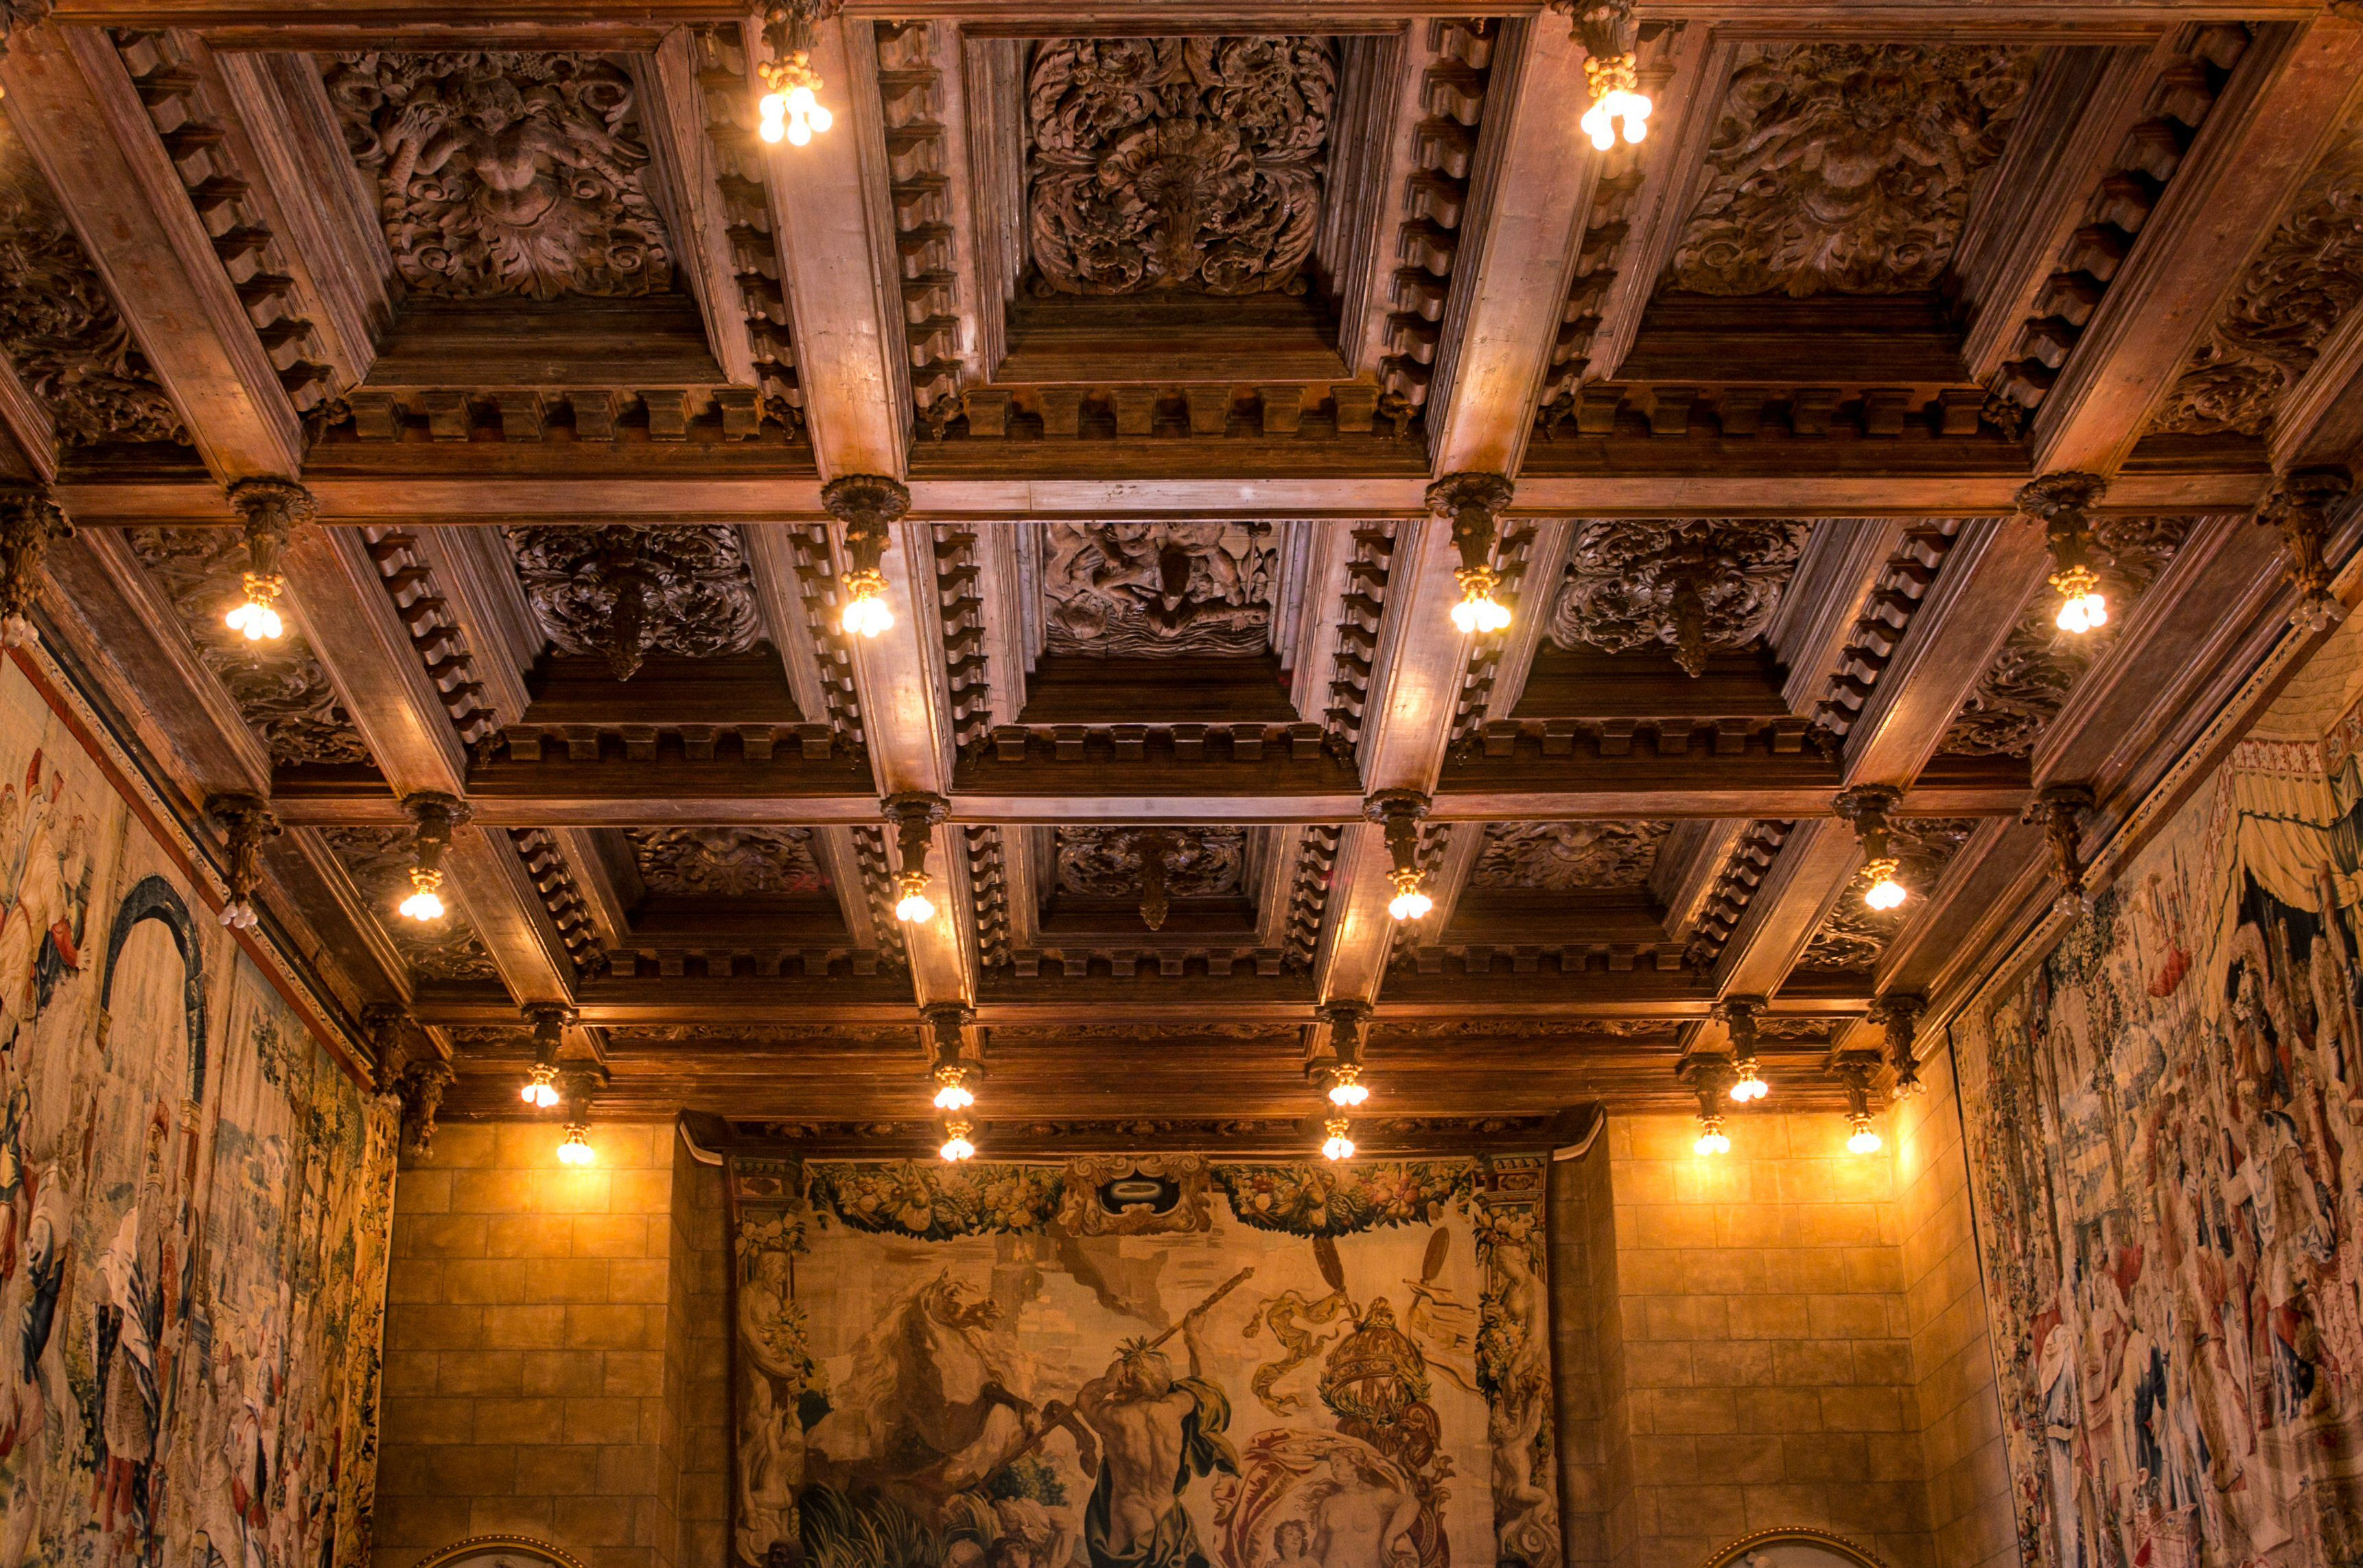 The ornate ceiling of the Assembly Room is viewed on a Great Room Tour at Hearst Castle